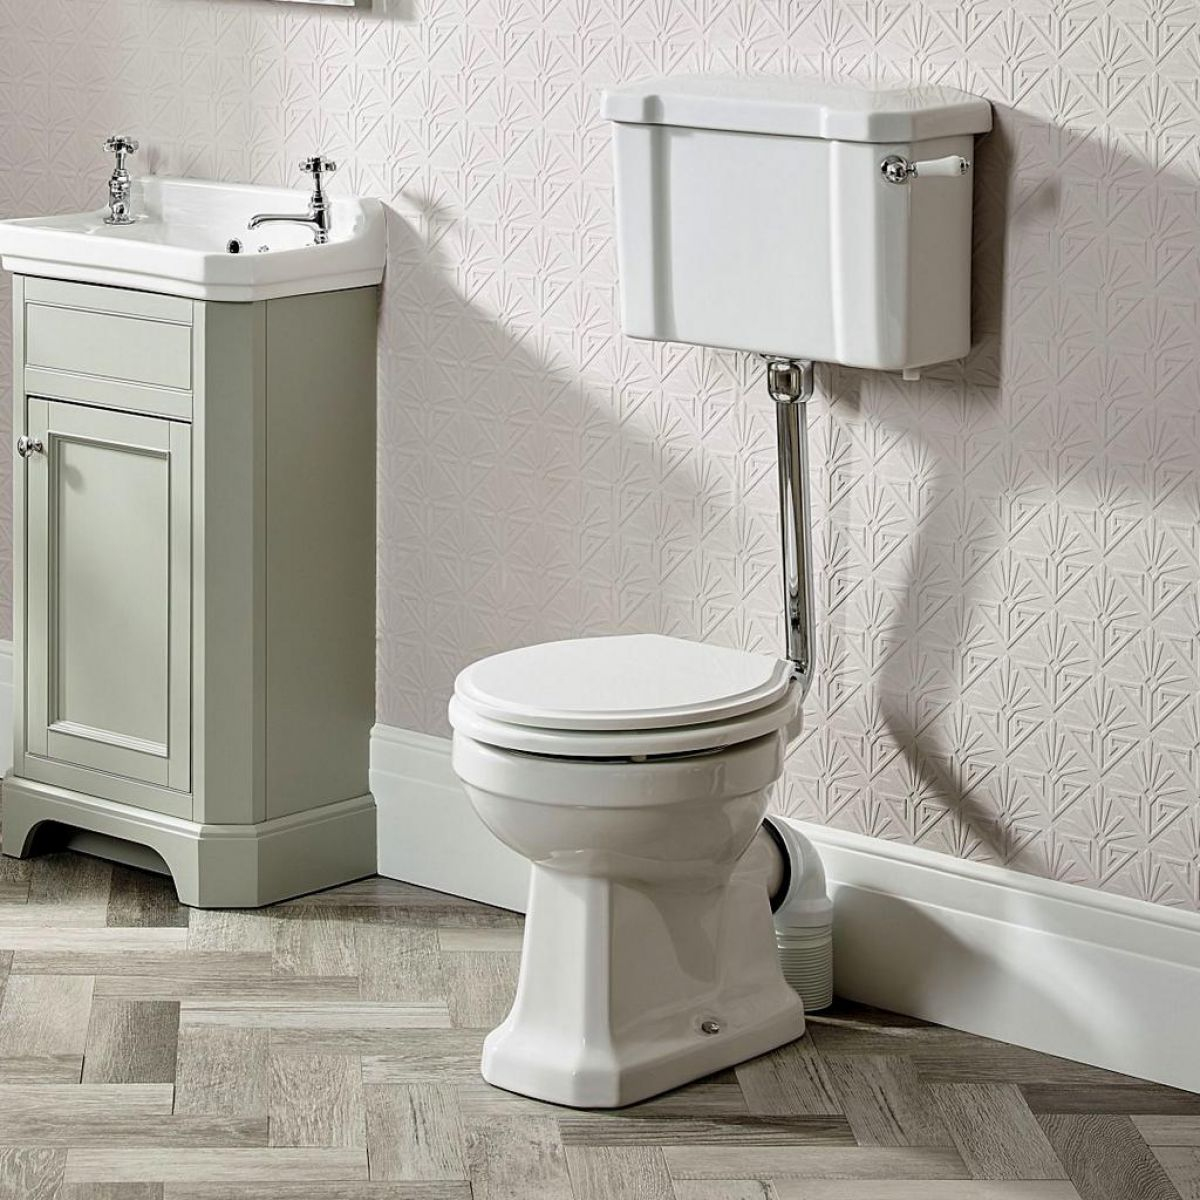 example image of a traditional toilet